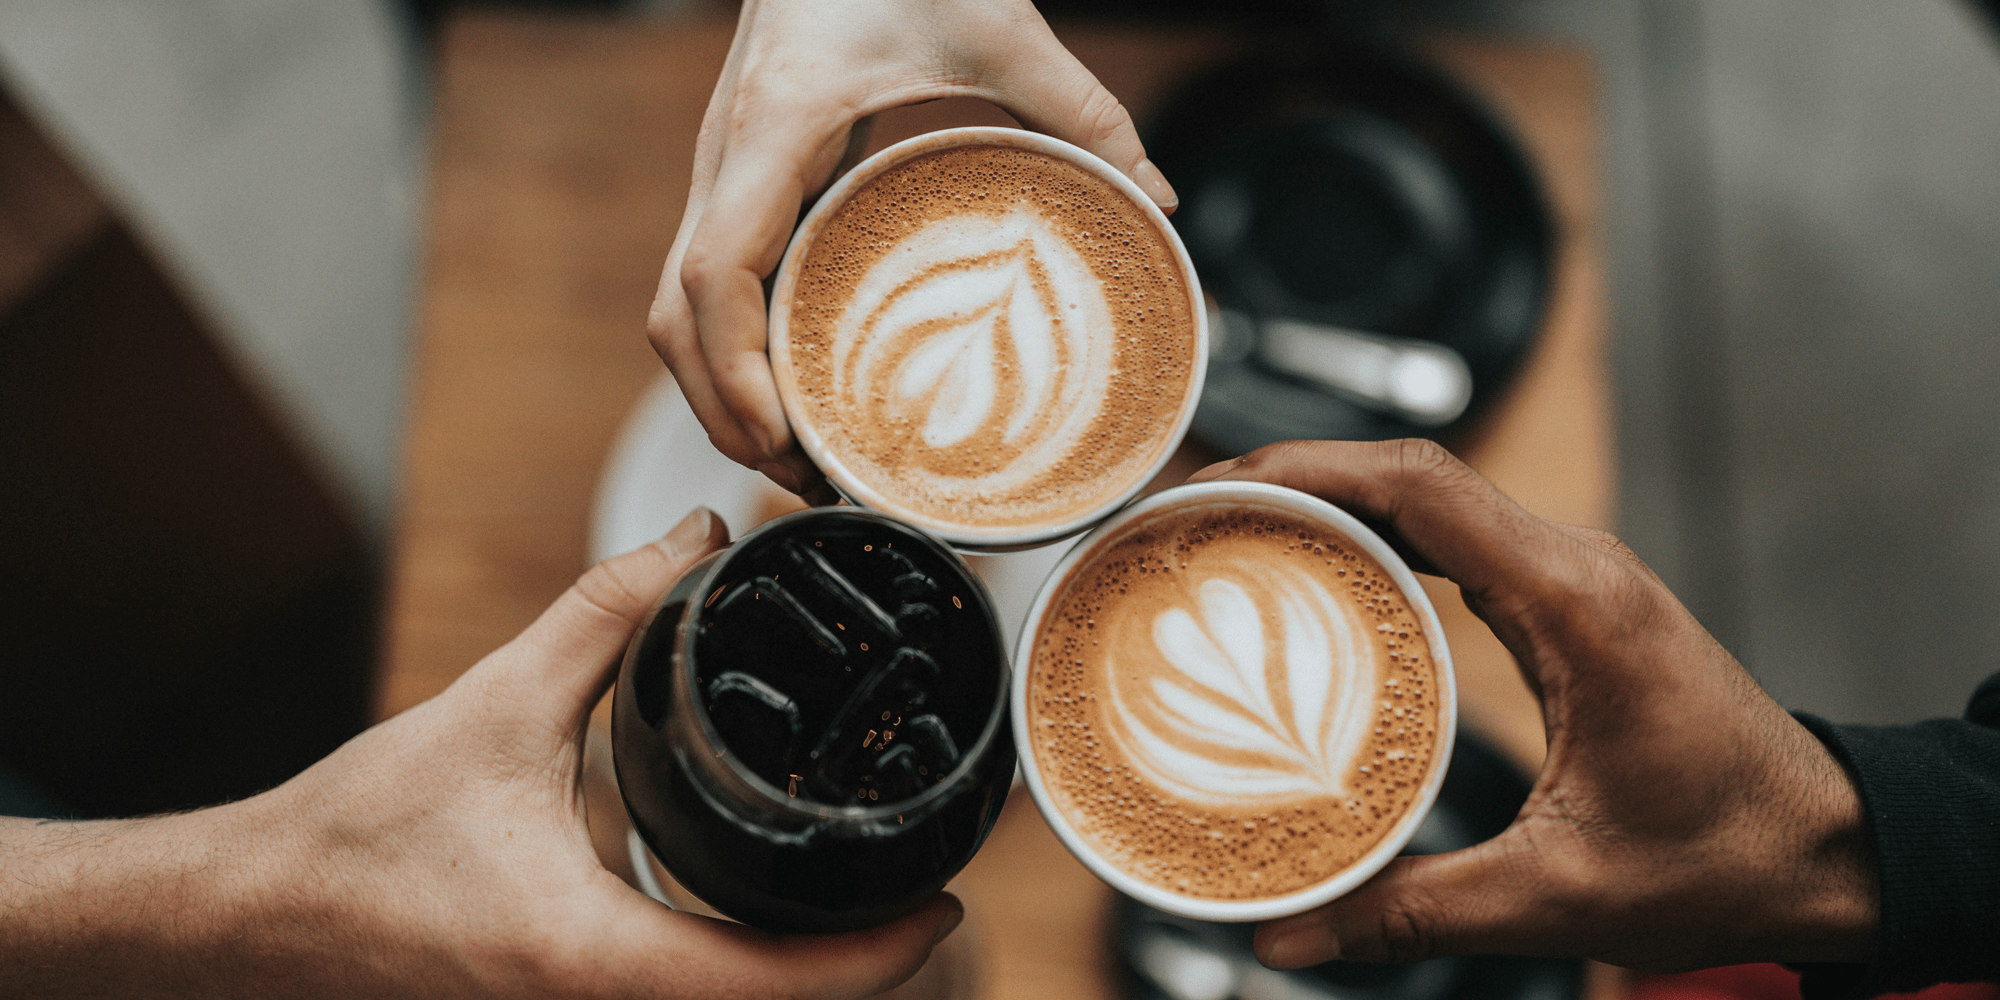 Brighton Coffee Festival 2019: What To Expect